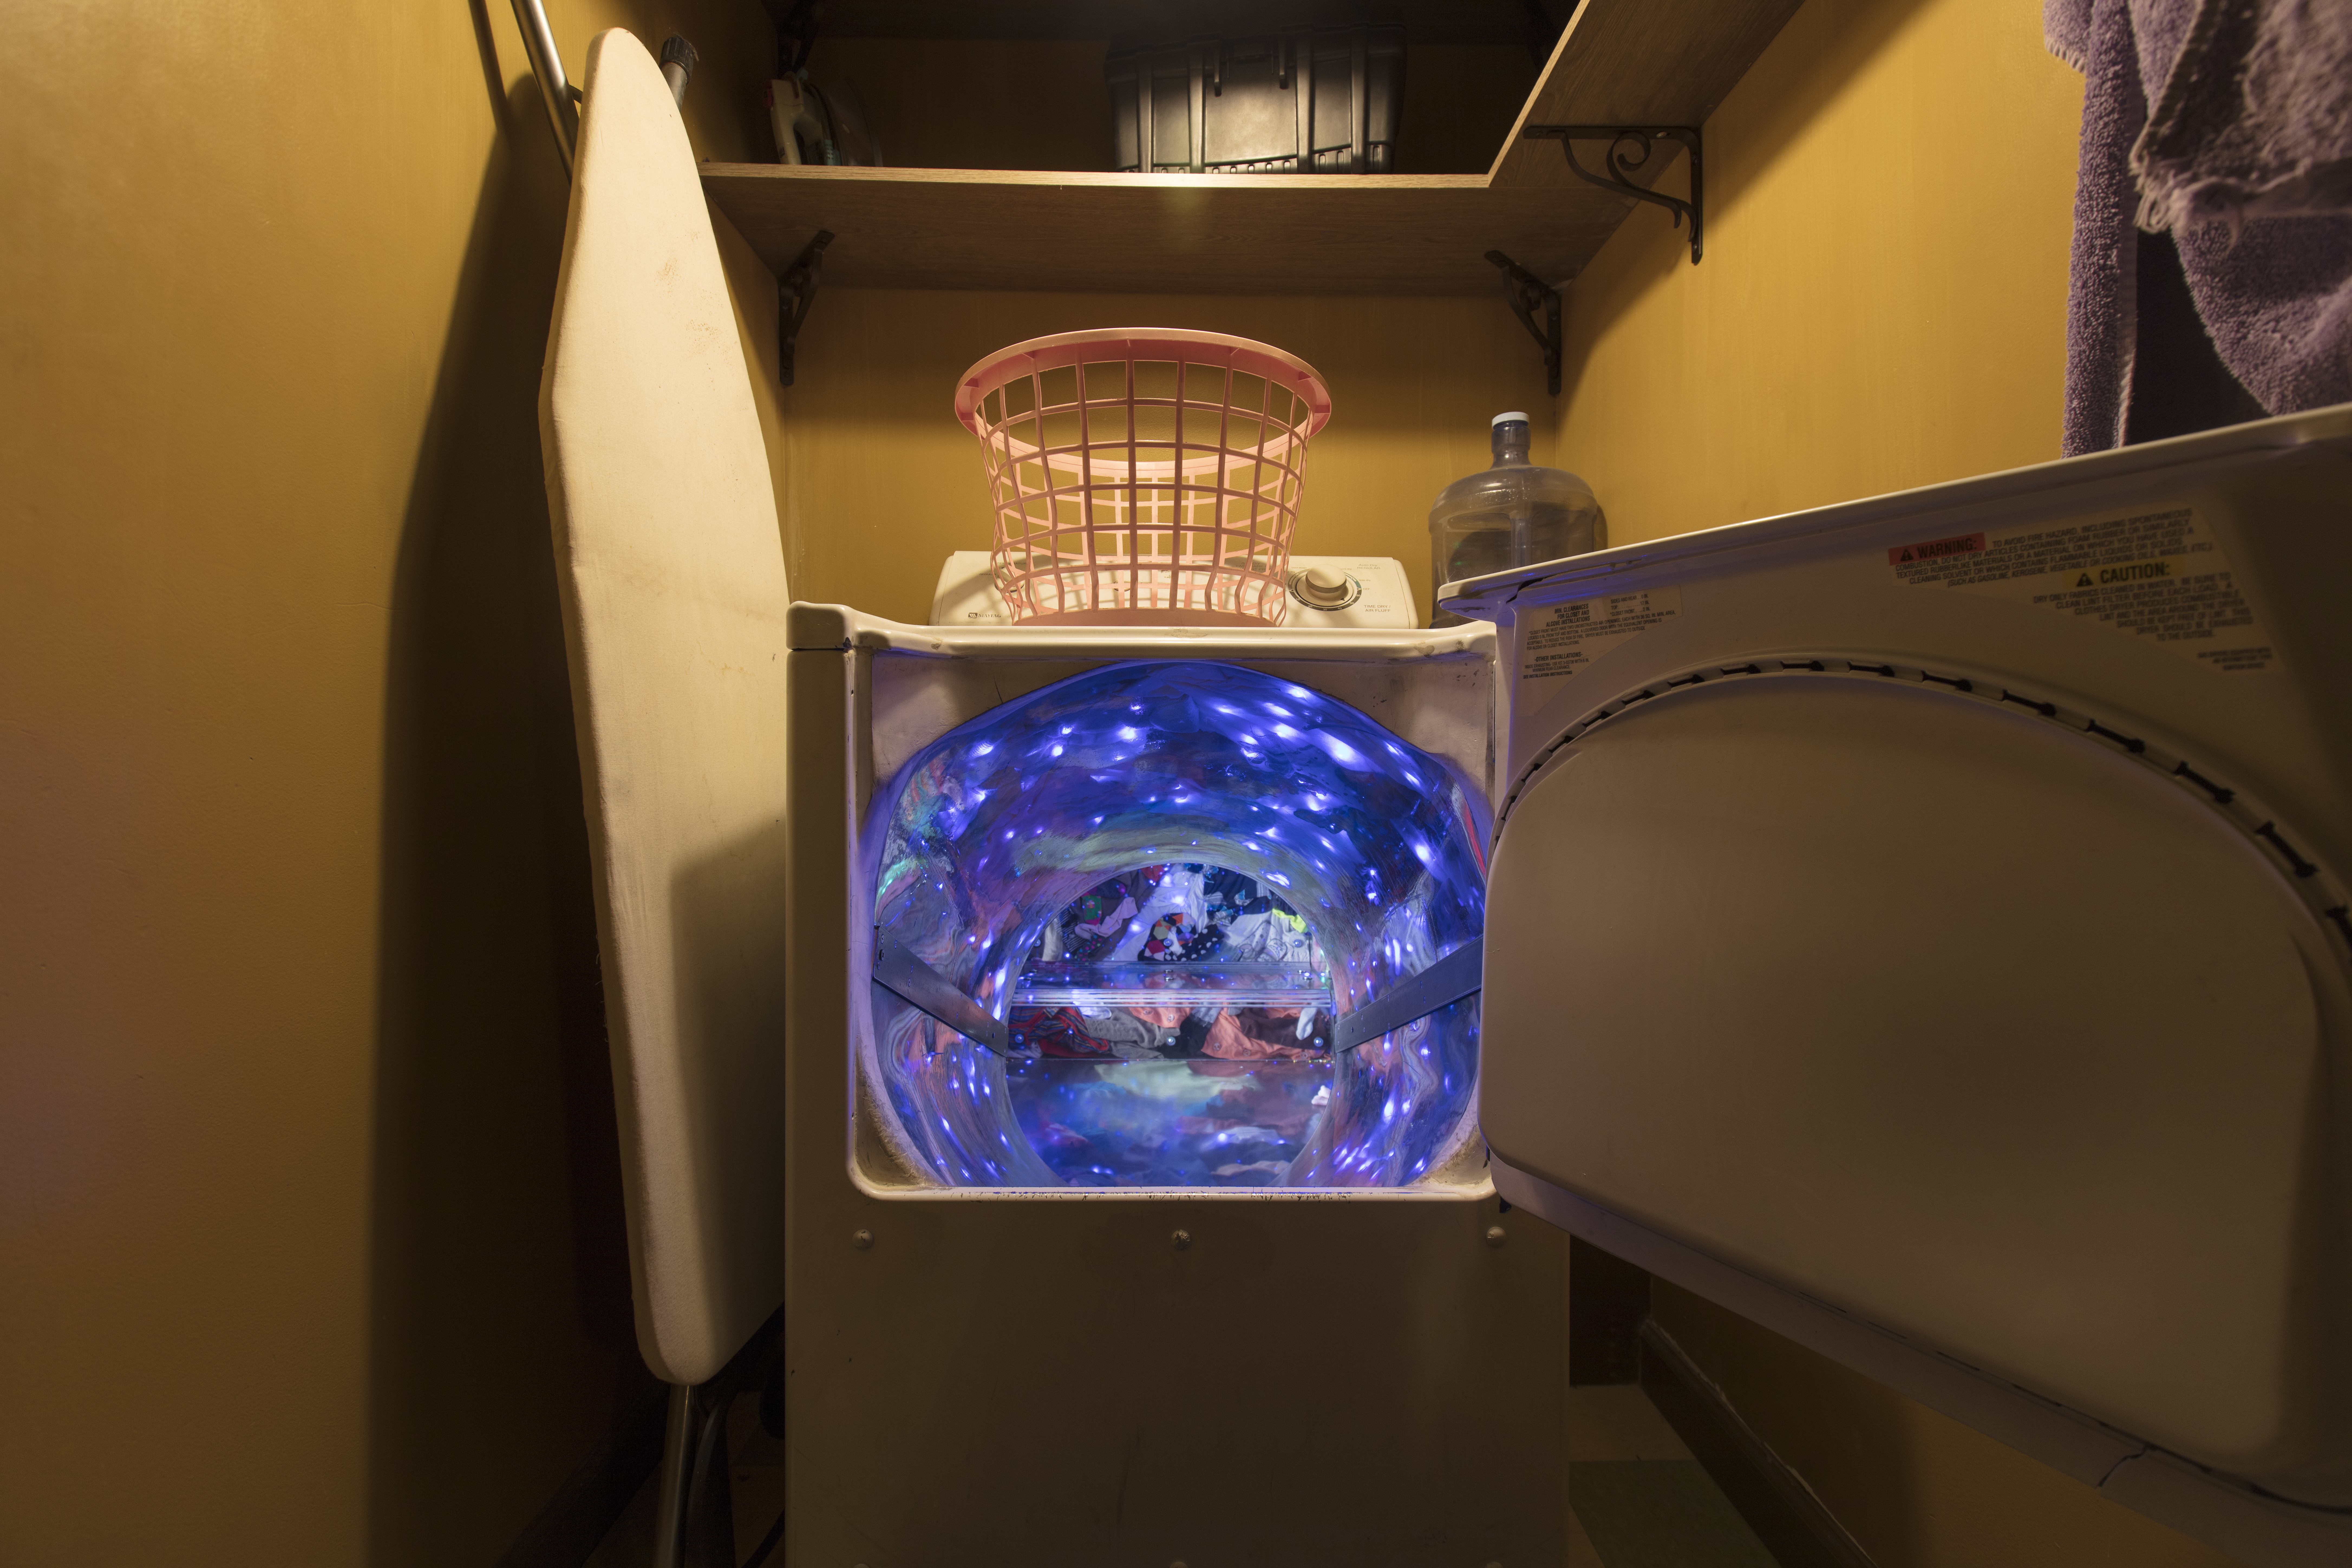 In Santa Fe Meow Wolf S House Of Eternal Return Is Mind Blowing In All The Best Ways The Boston Globe